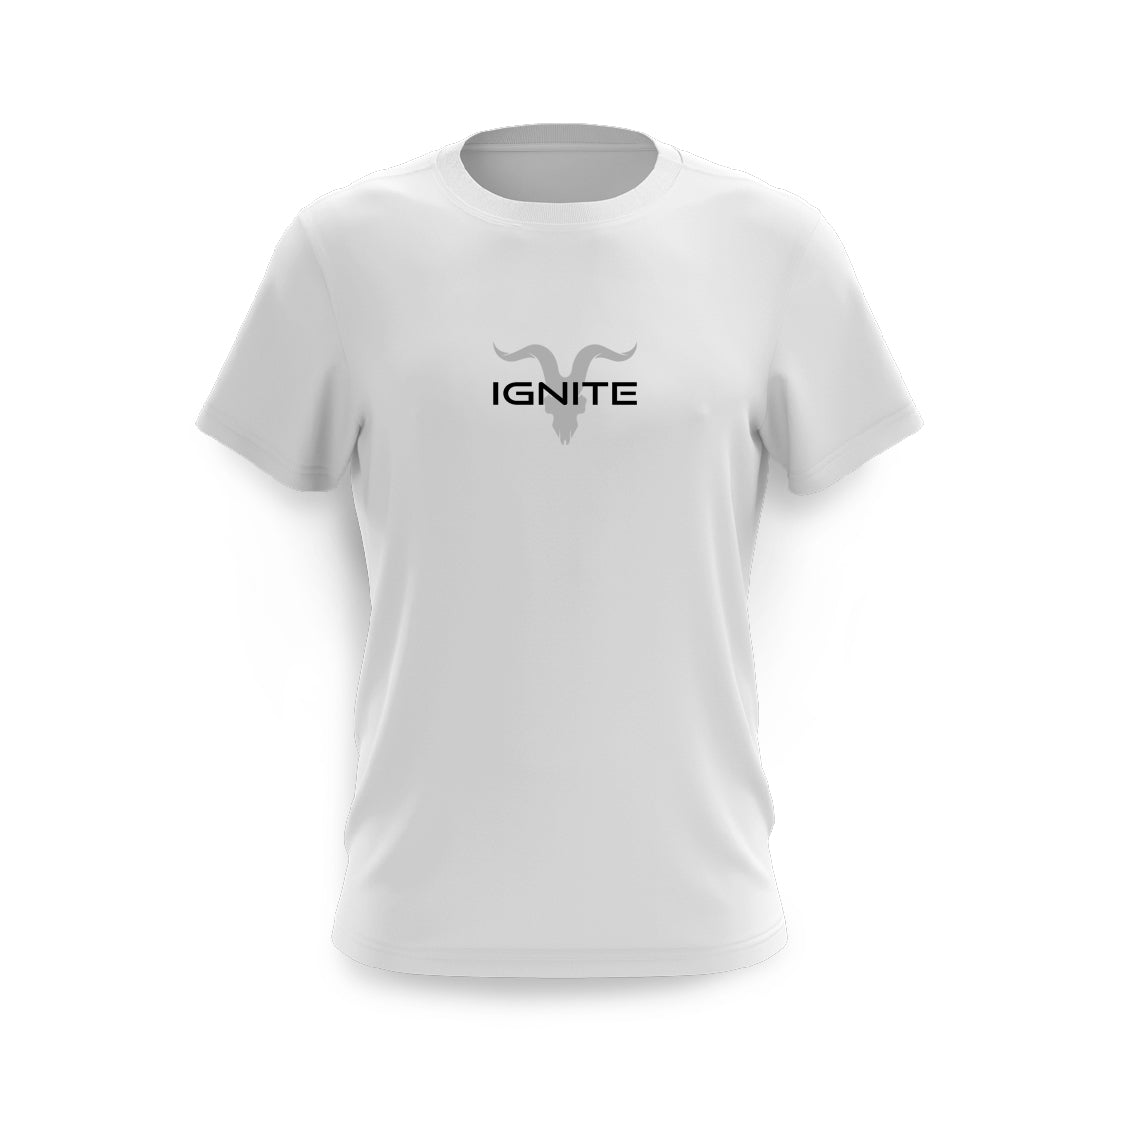 Ignite Premium Collection Men's White & Grey Logo Tee - ignite-merch